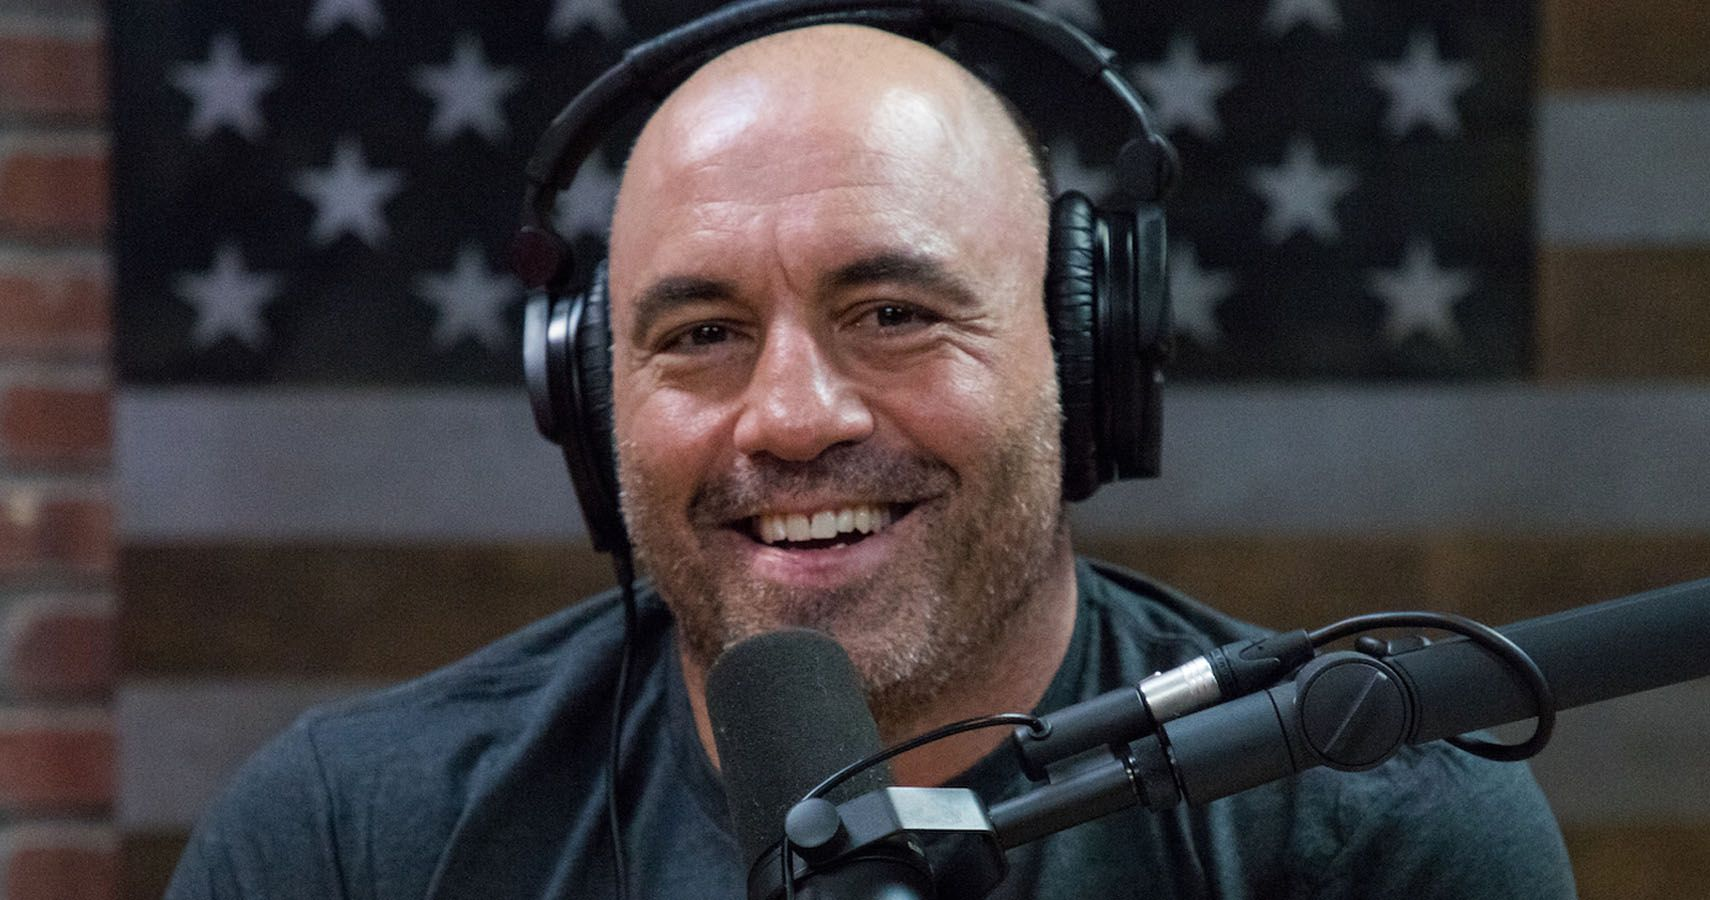 Joe Rogan: 10 Facts You Didn't Know About Him | TheTalko